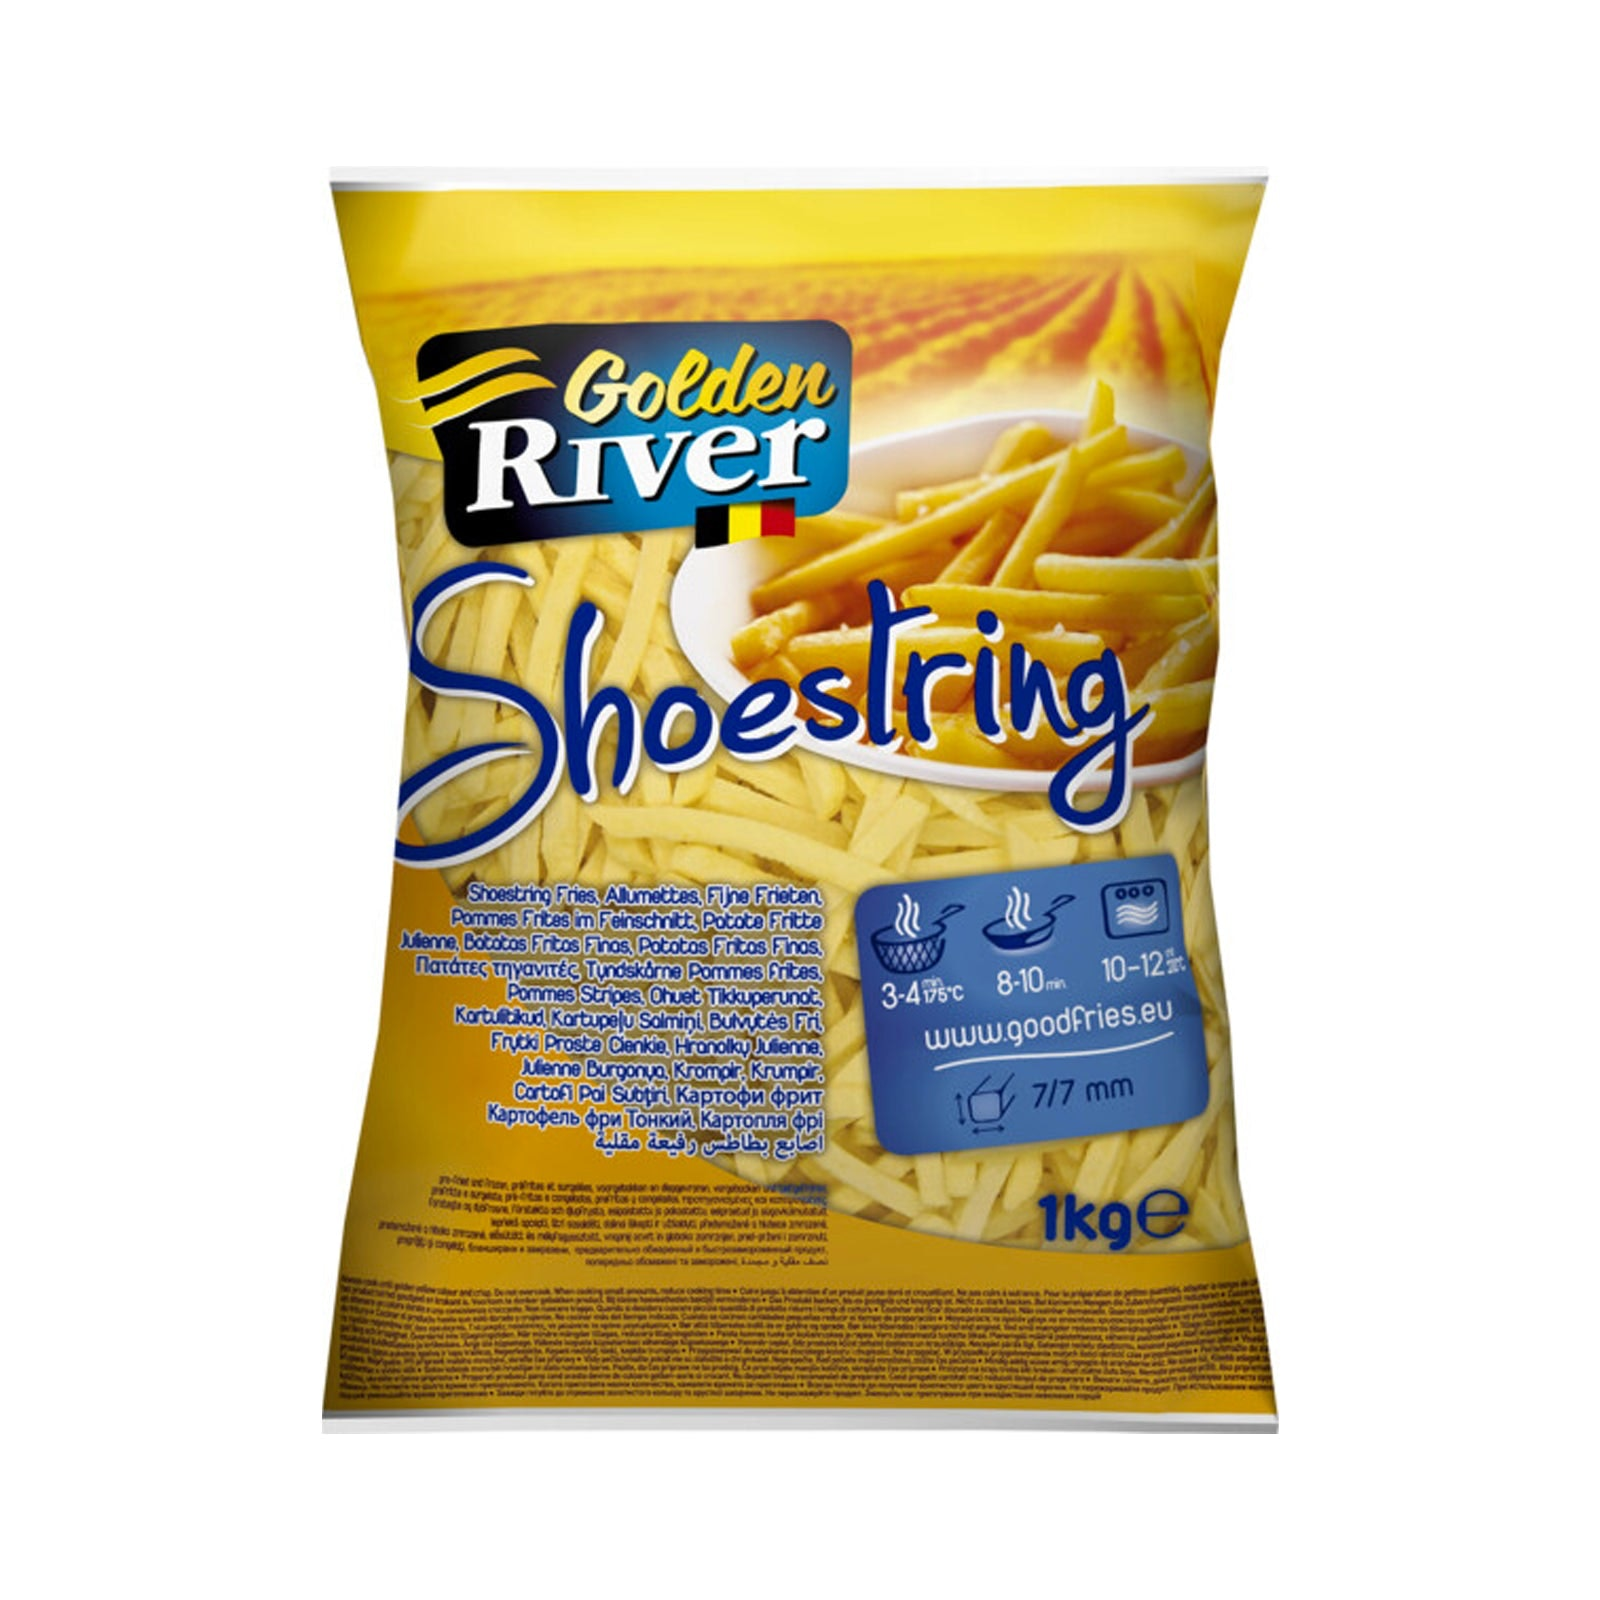 Golden River 9/32 Shoestring